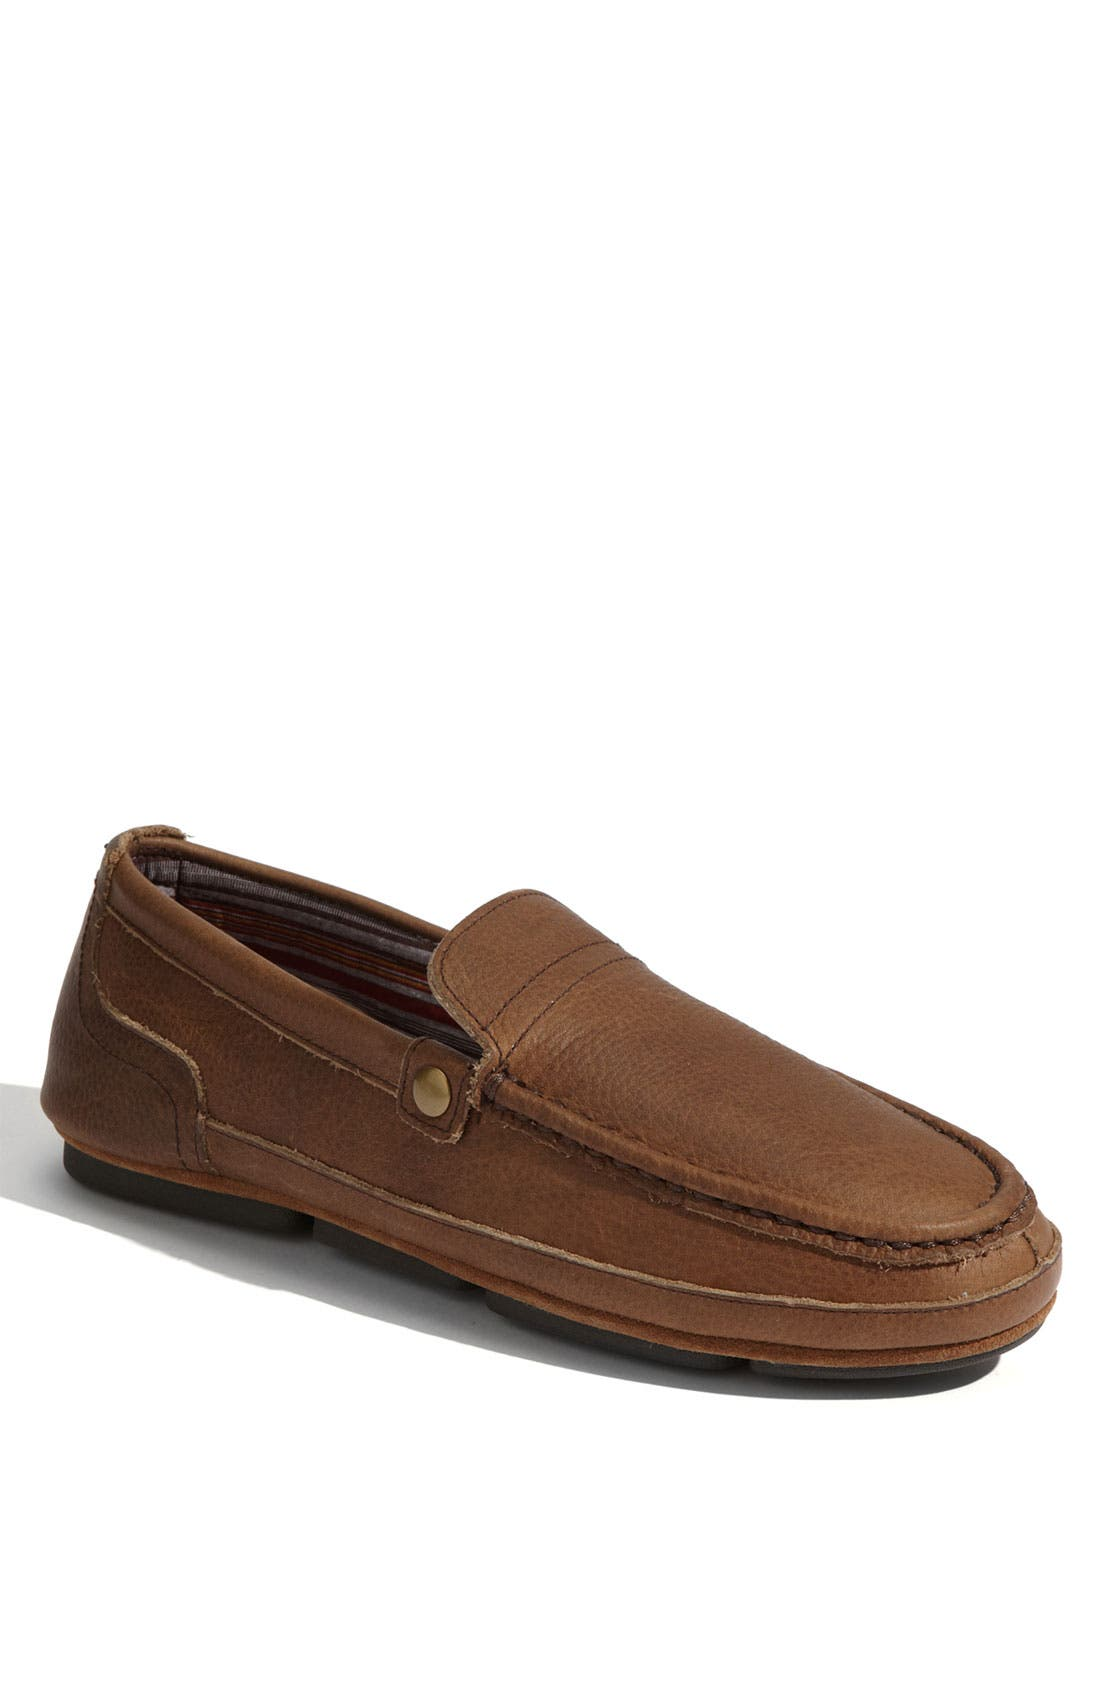 Alternate Image 1 Selected - L.B. Evans 'Finn' Slipper (Online Only)